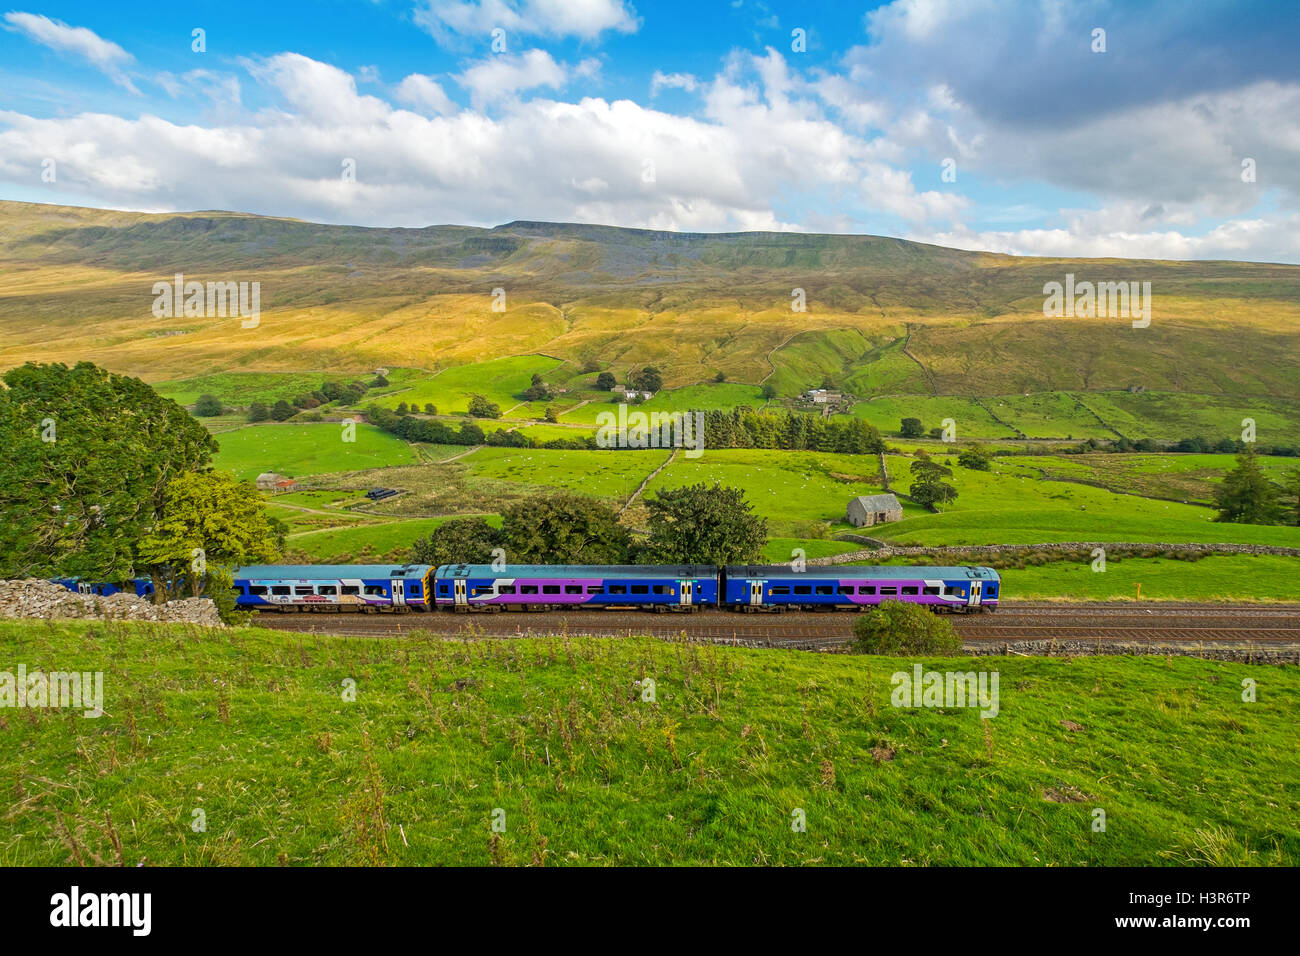 A Northern train on the Settle to Carlisle line in Mallerstang, in The Yorkshire Dales - Stock Image